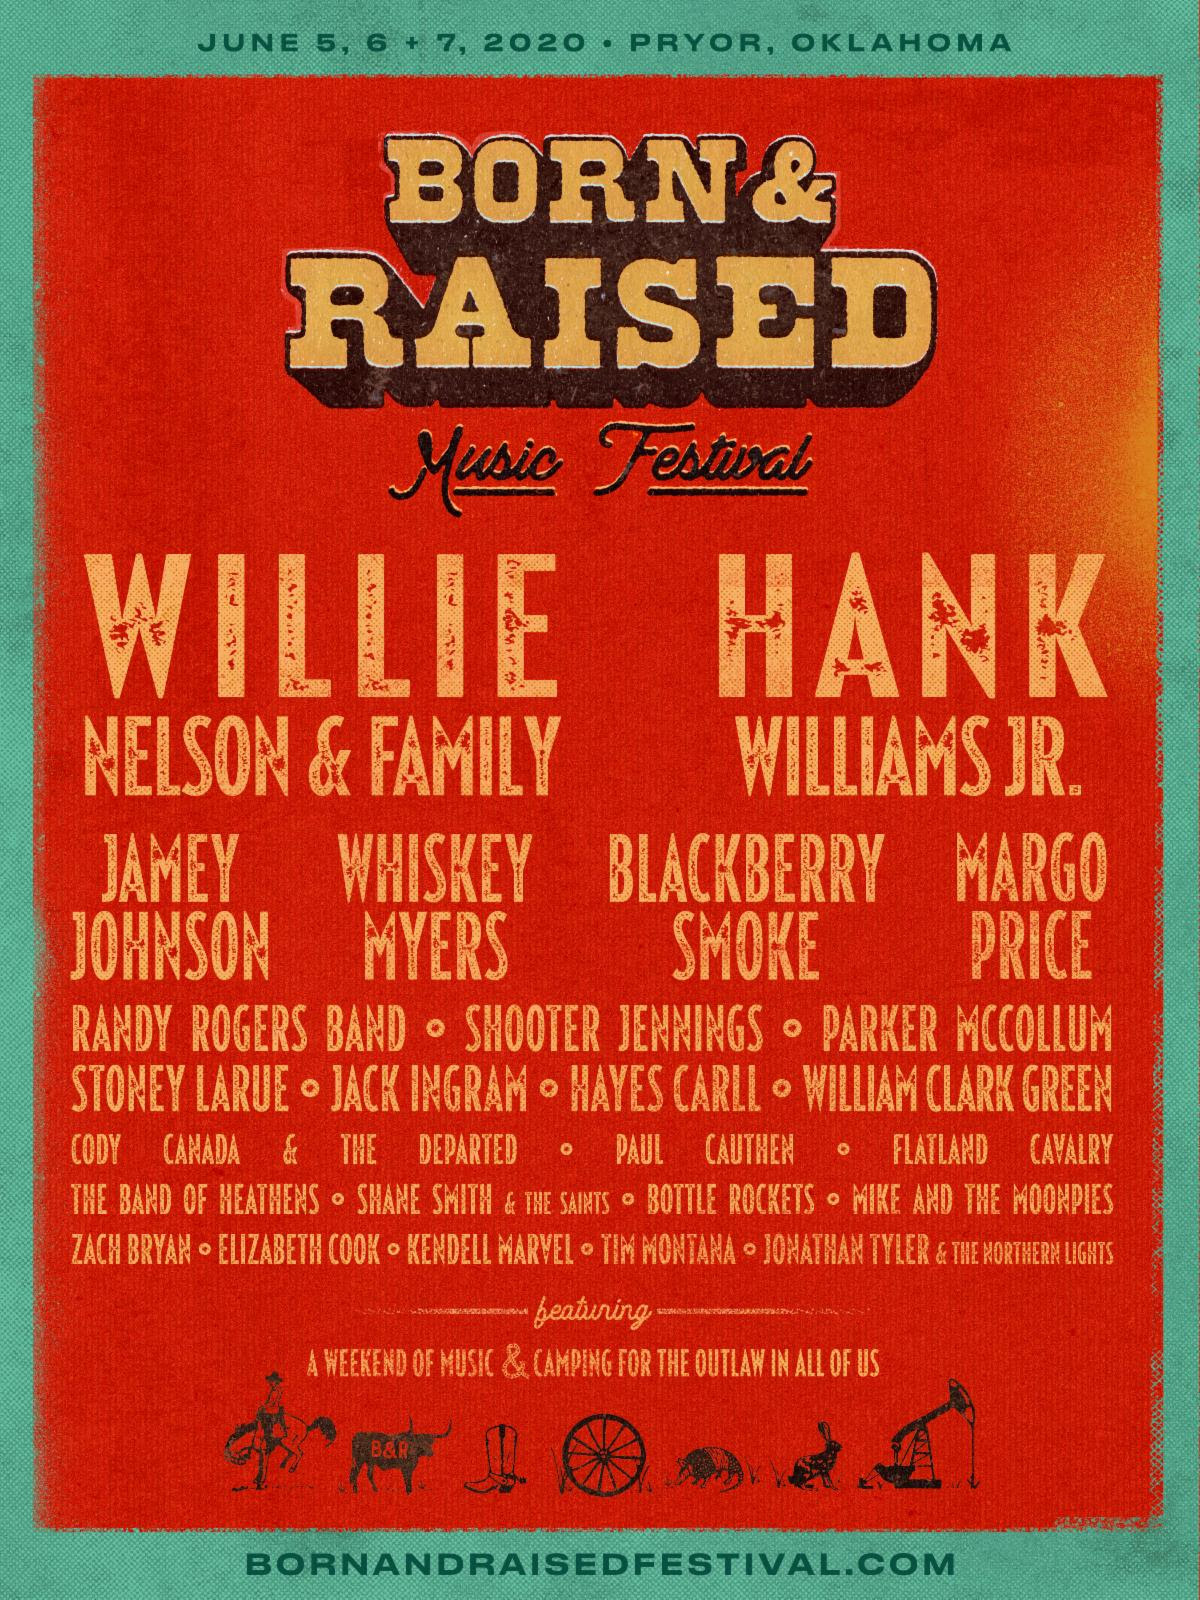 BORN & RAISED MUSIC FESTIVAL Announces Inaugural Lineup Headlined By Willie Nelson & Family and Hank Williams Jr.